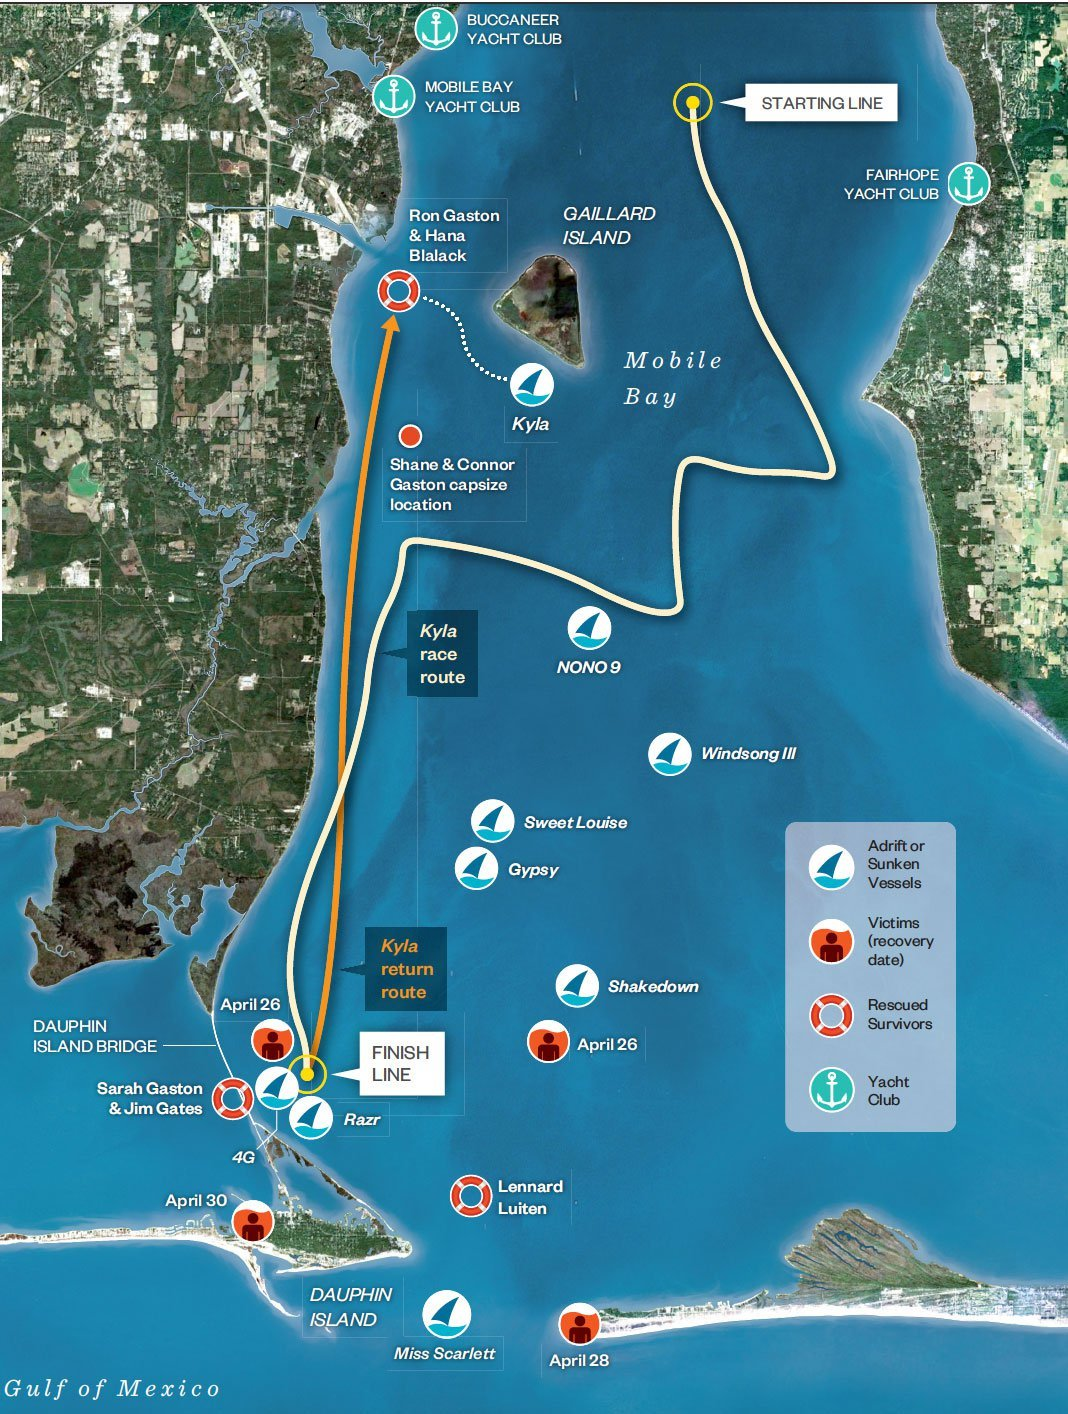 Racing the Storm: The Story of the Mobile Bay Sailing Disaster